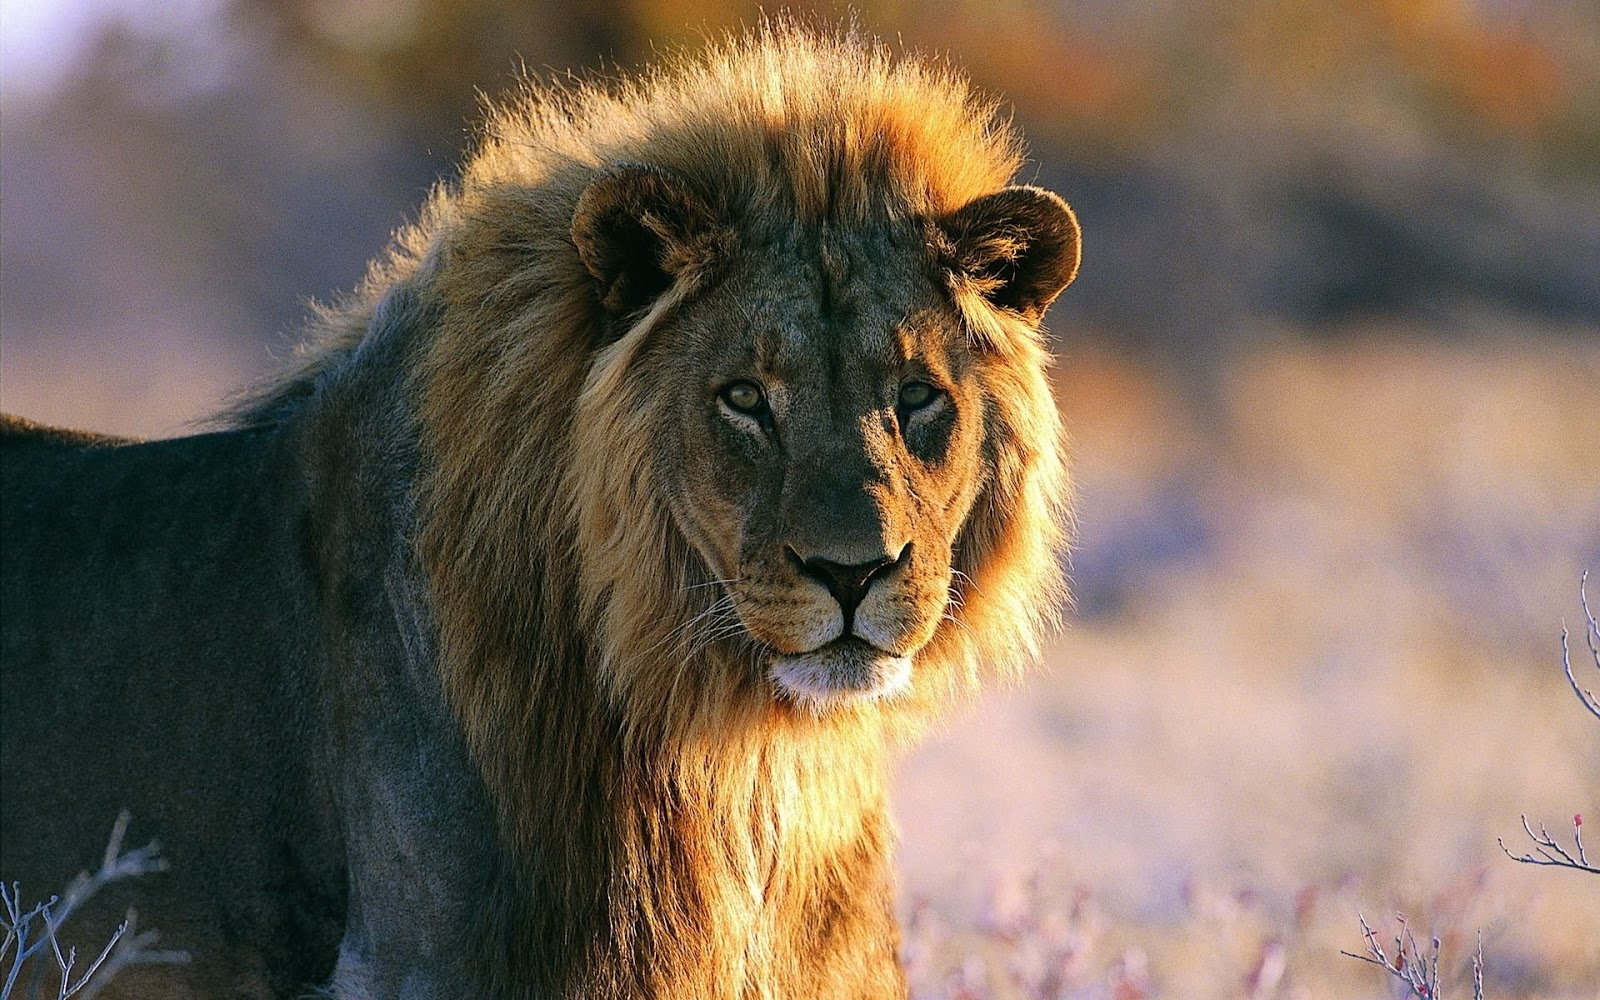 Lion Hd Wallpapers: African Lion New Hd Wallpapers 2013